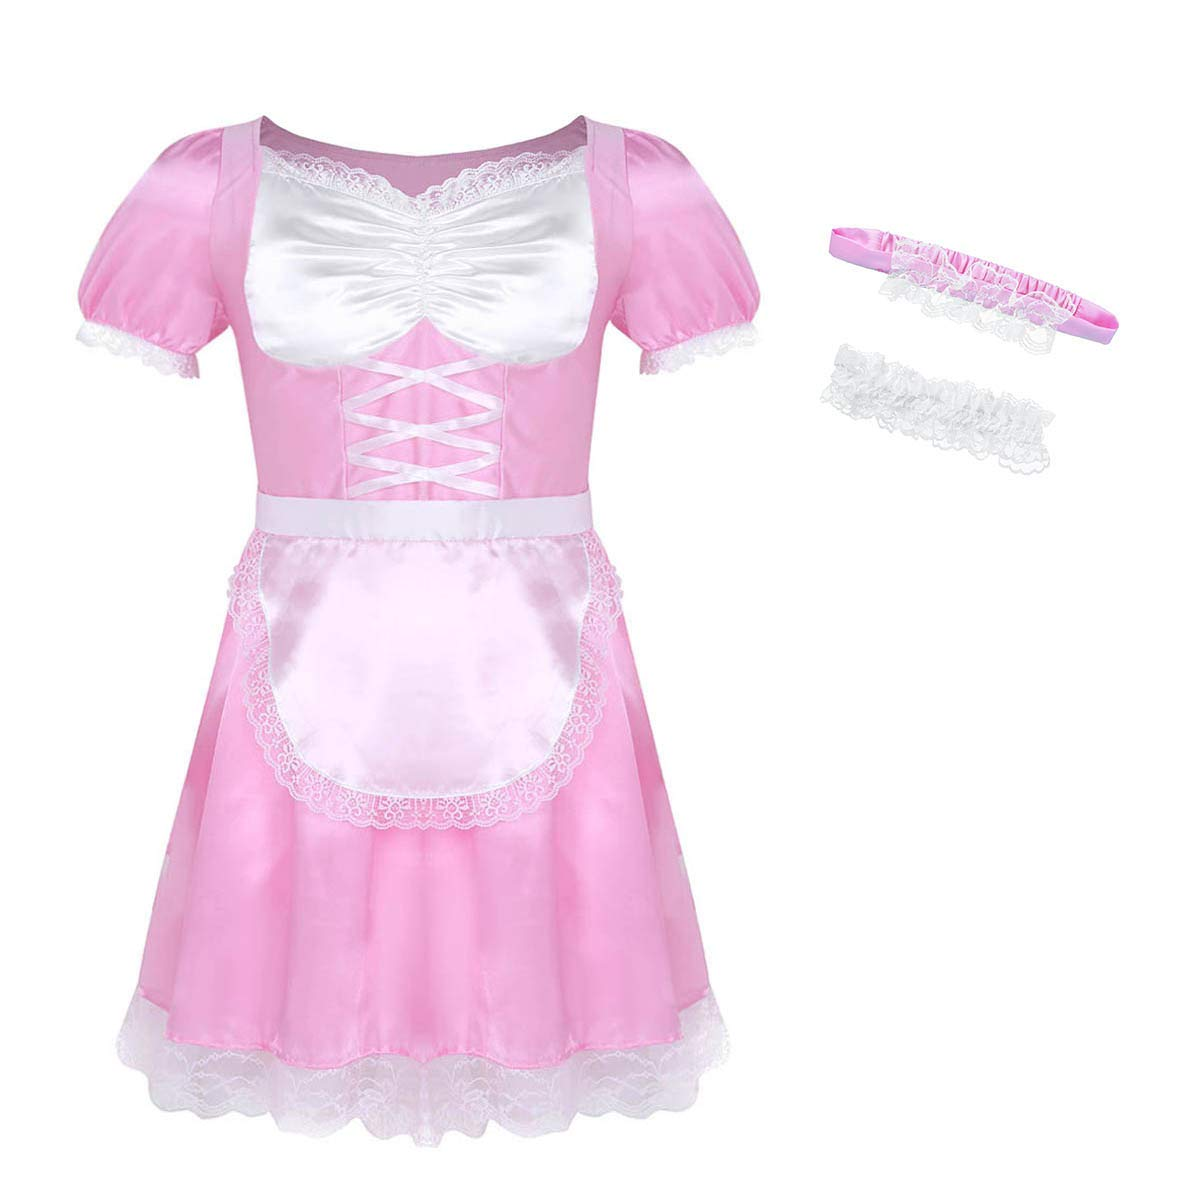 Yeahdor Men's 3Pcs Sissy Maid Uniform Lace Trim Naughty Fancy Dress Costume Pajama Lingerie Outfit